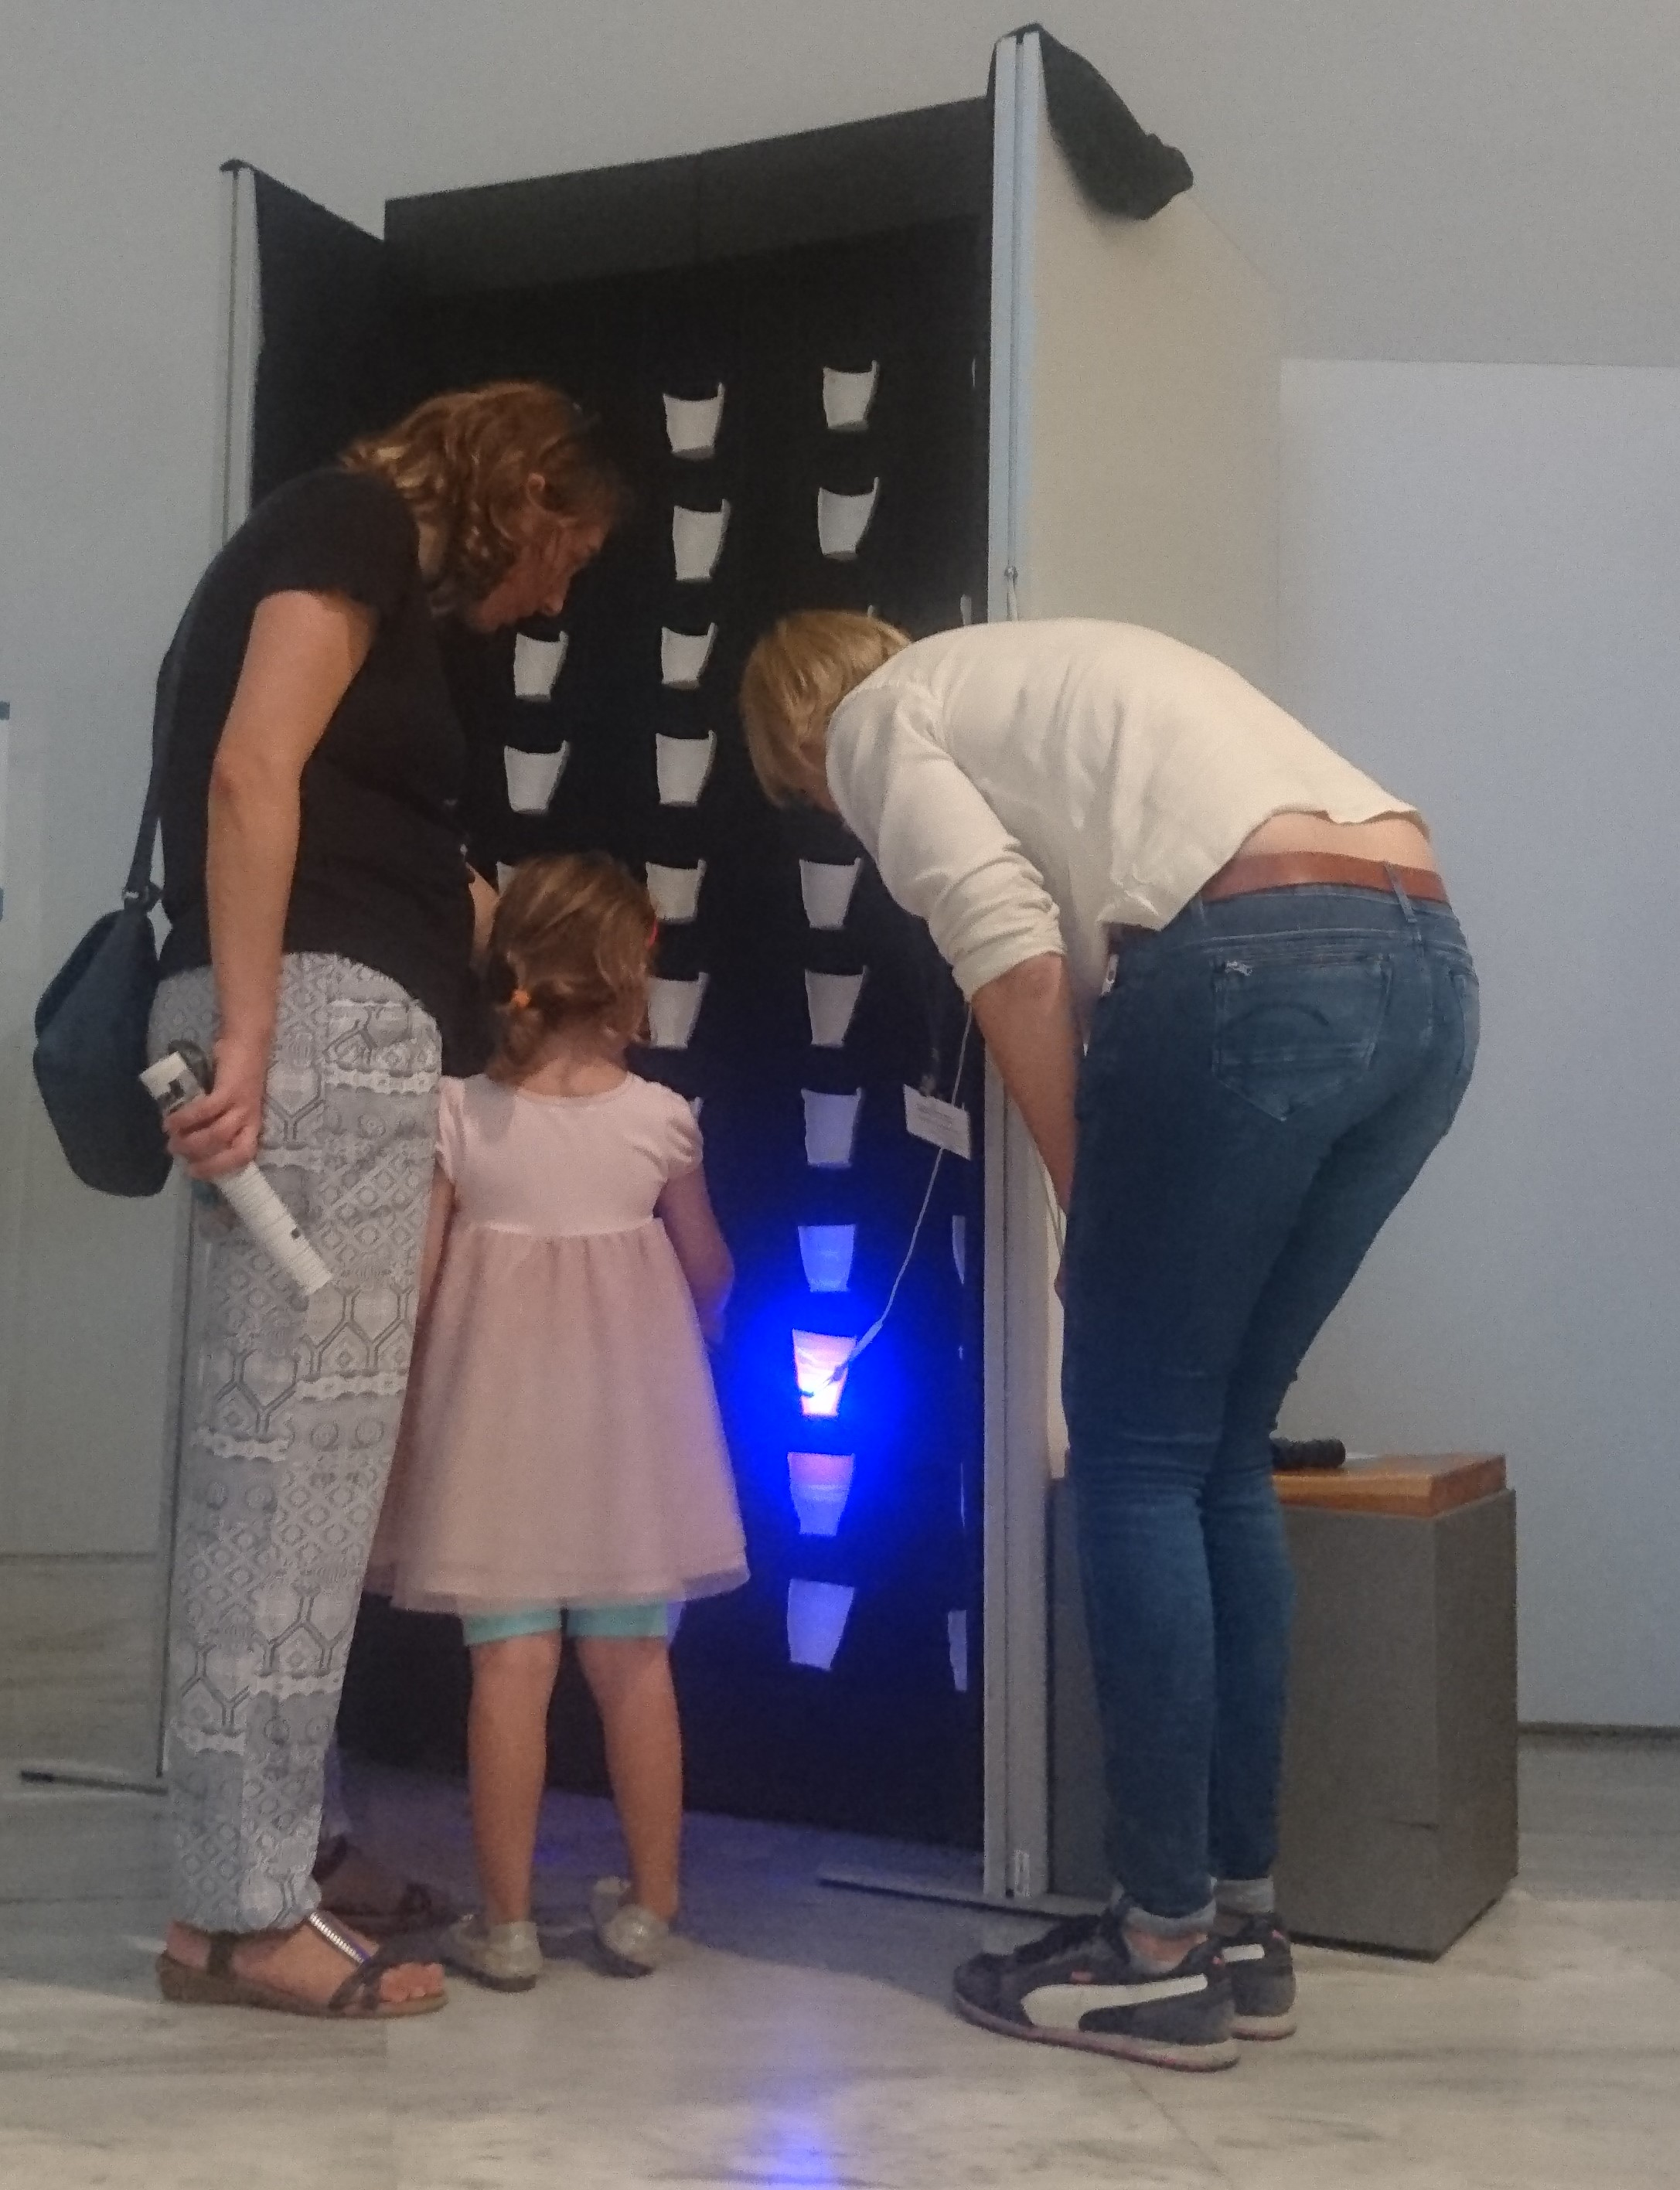 A mother and her daughter visiting the Tracing the Conical Cup exhibition are standing next to project team member Loes Opgenhaffen. They are facing an upright display of cups cut in half, and the young girl is using a ultraviolet flashlight to look at one of the cups on display.